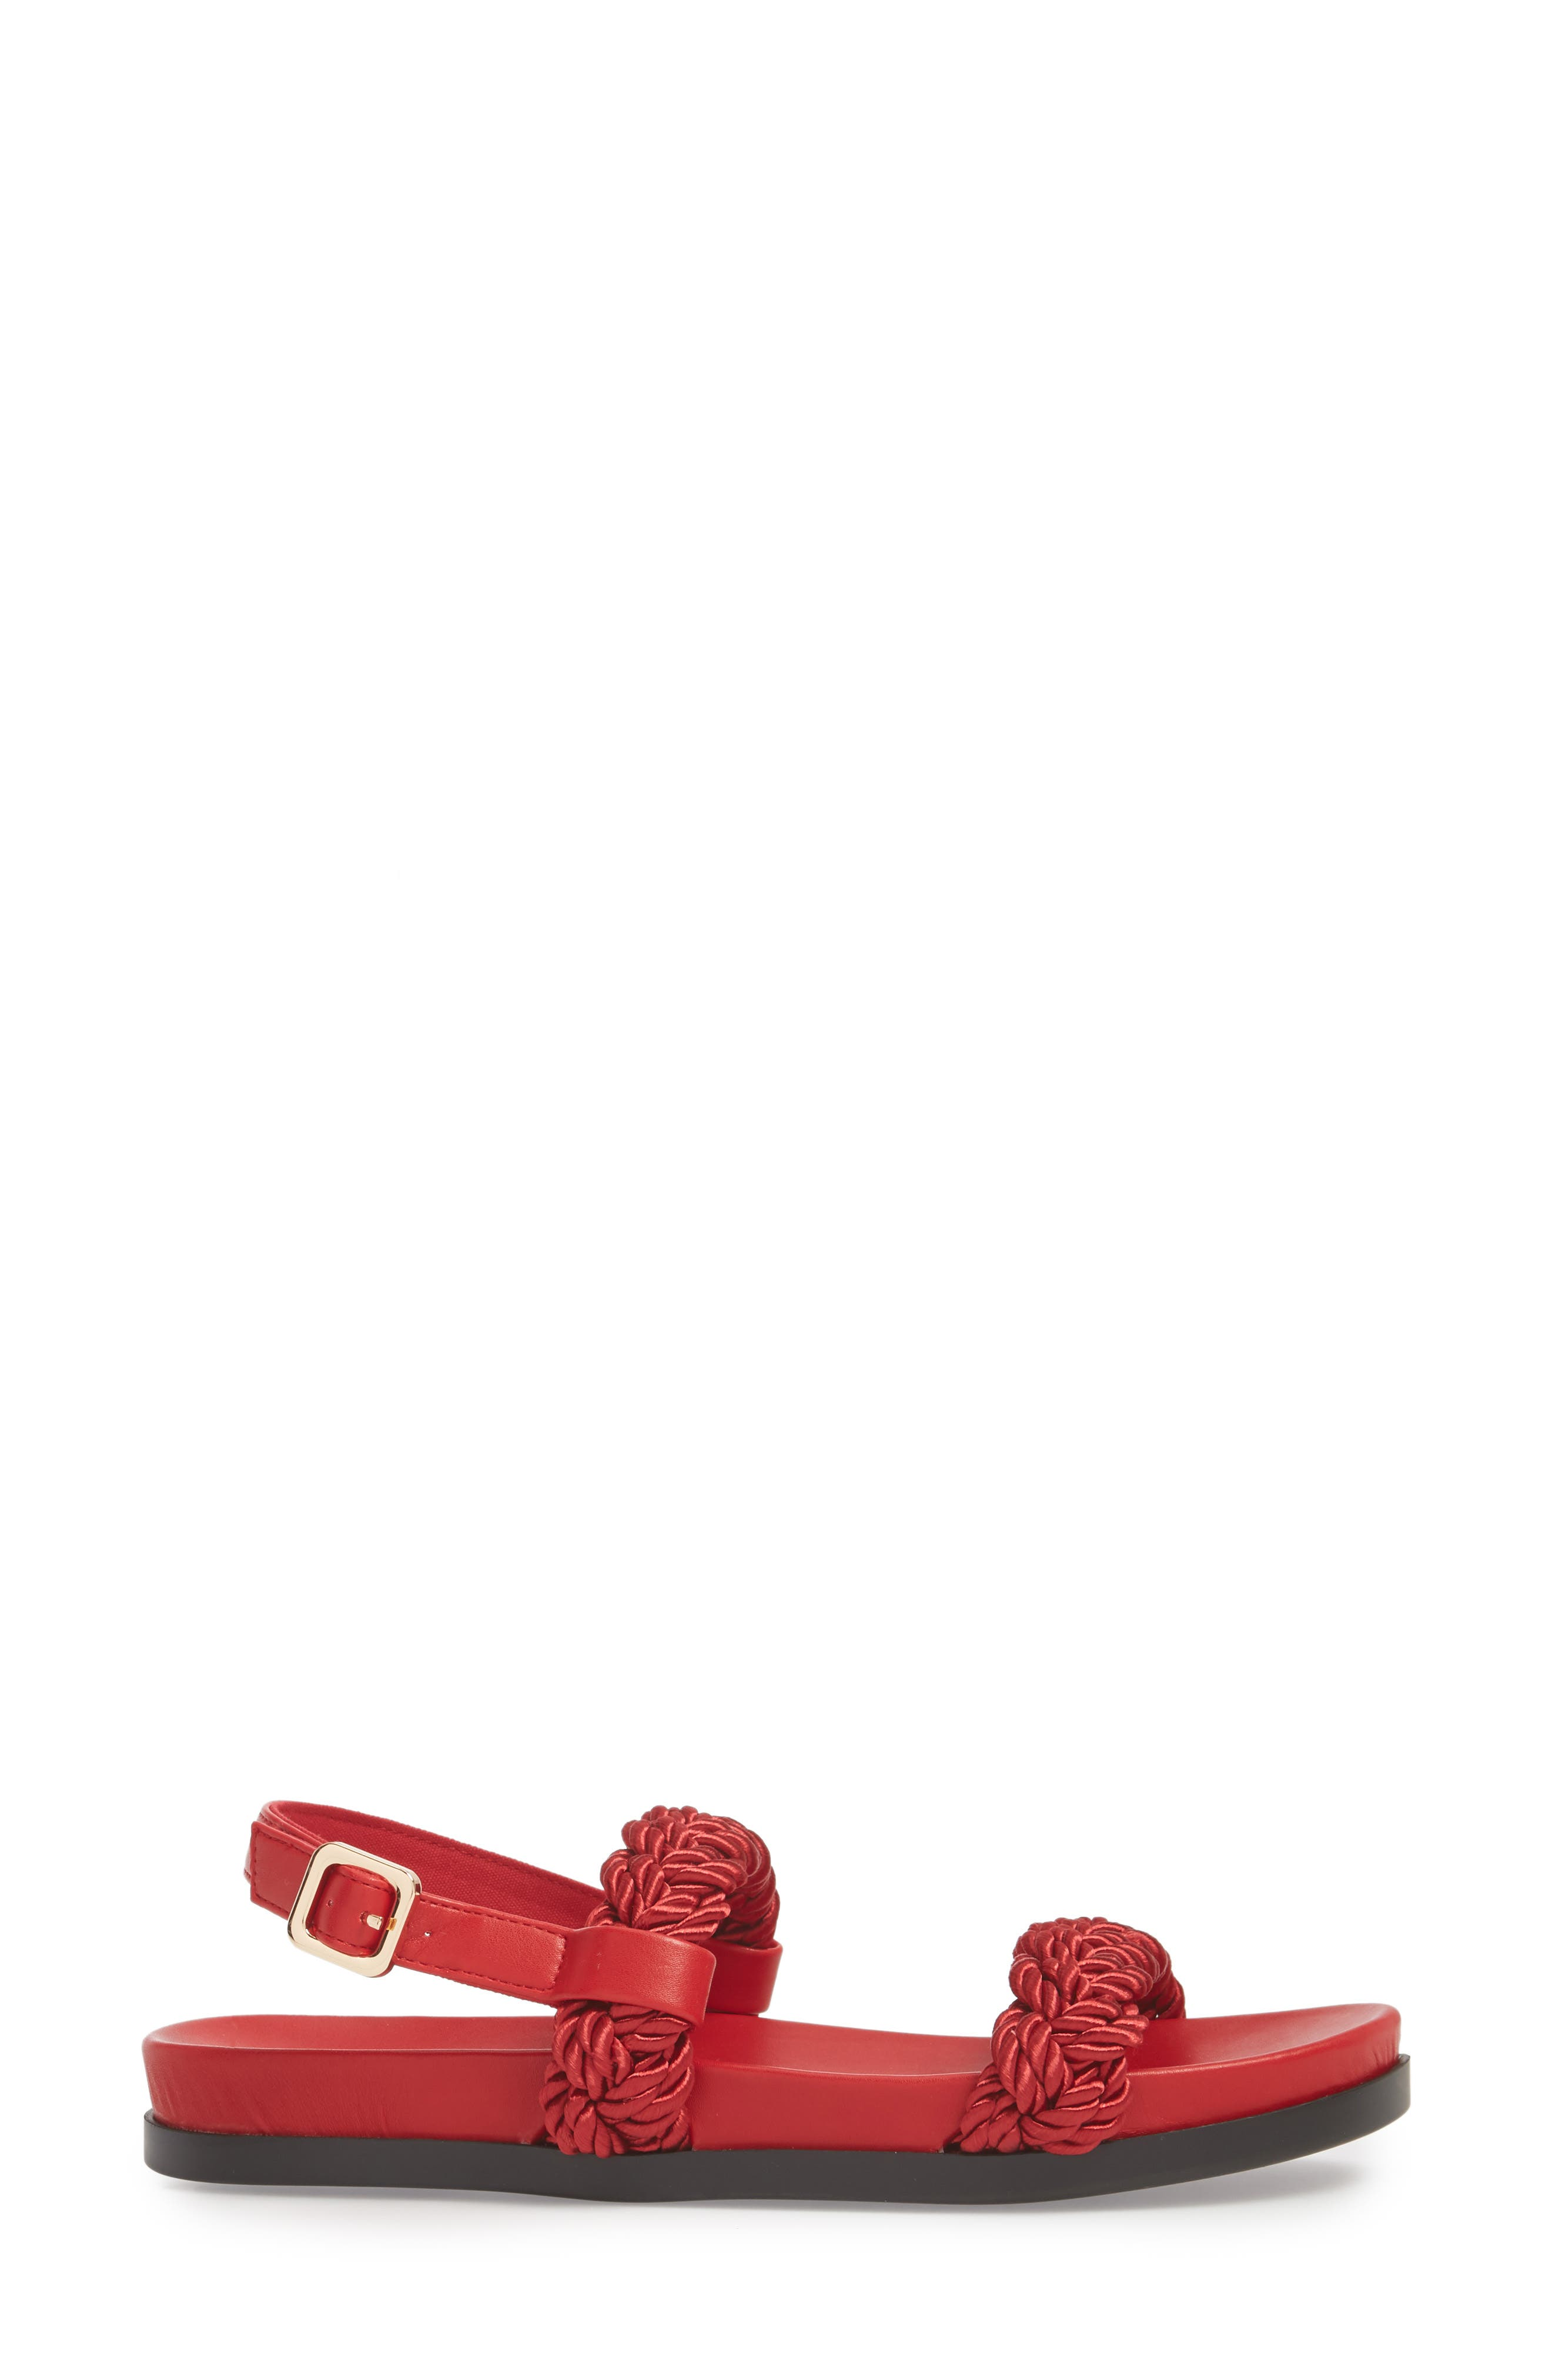 Hackney Rope Footbed Sandals,                             Alternate thumbnail 3, color,                             RED